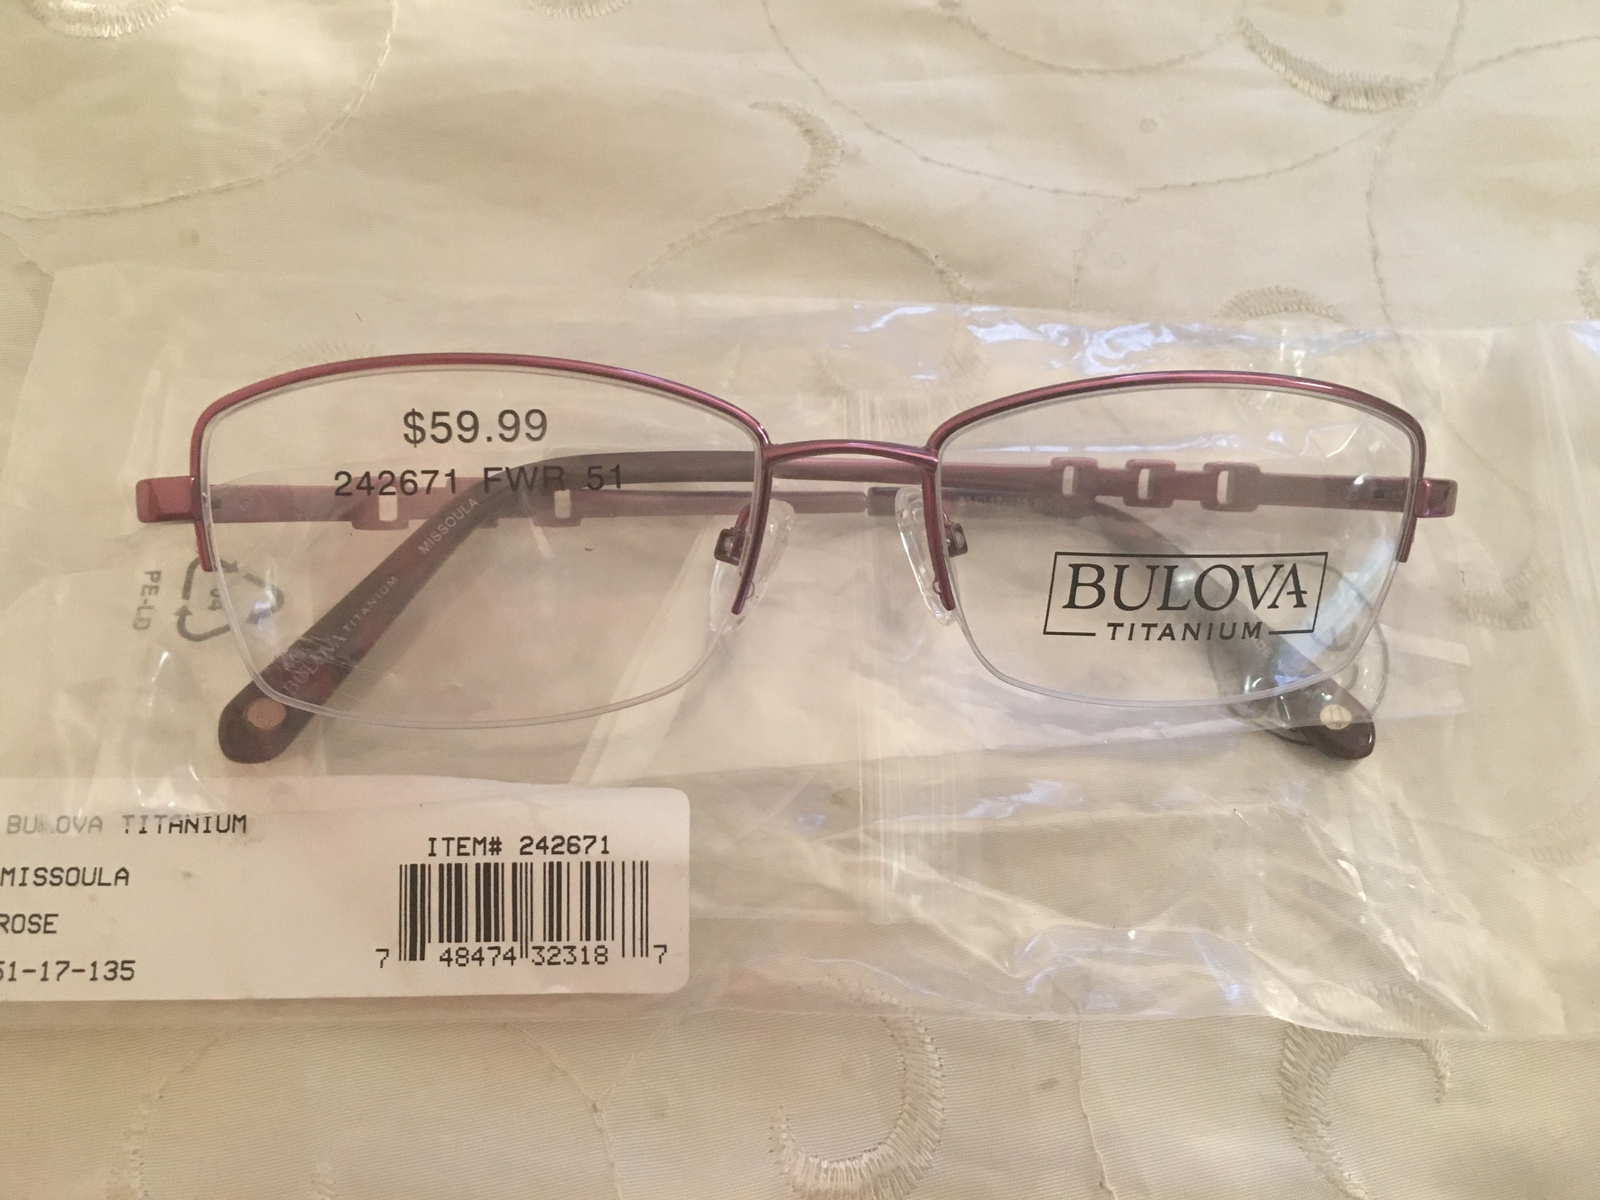 Bulova Missoula Rose Women's Eyeglass Eyeglasses Frames # 24267 51-17-135 - $59.95